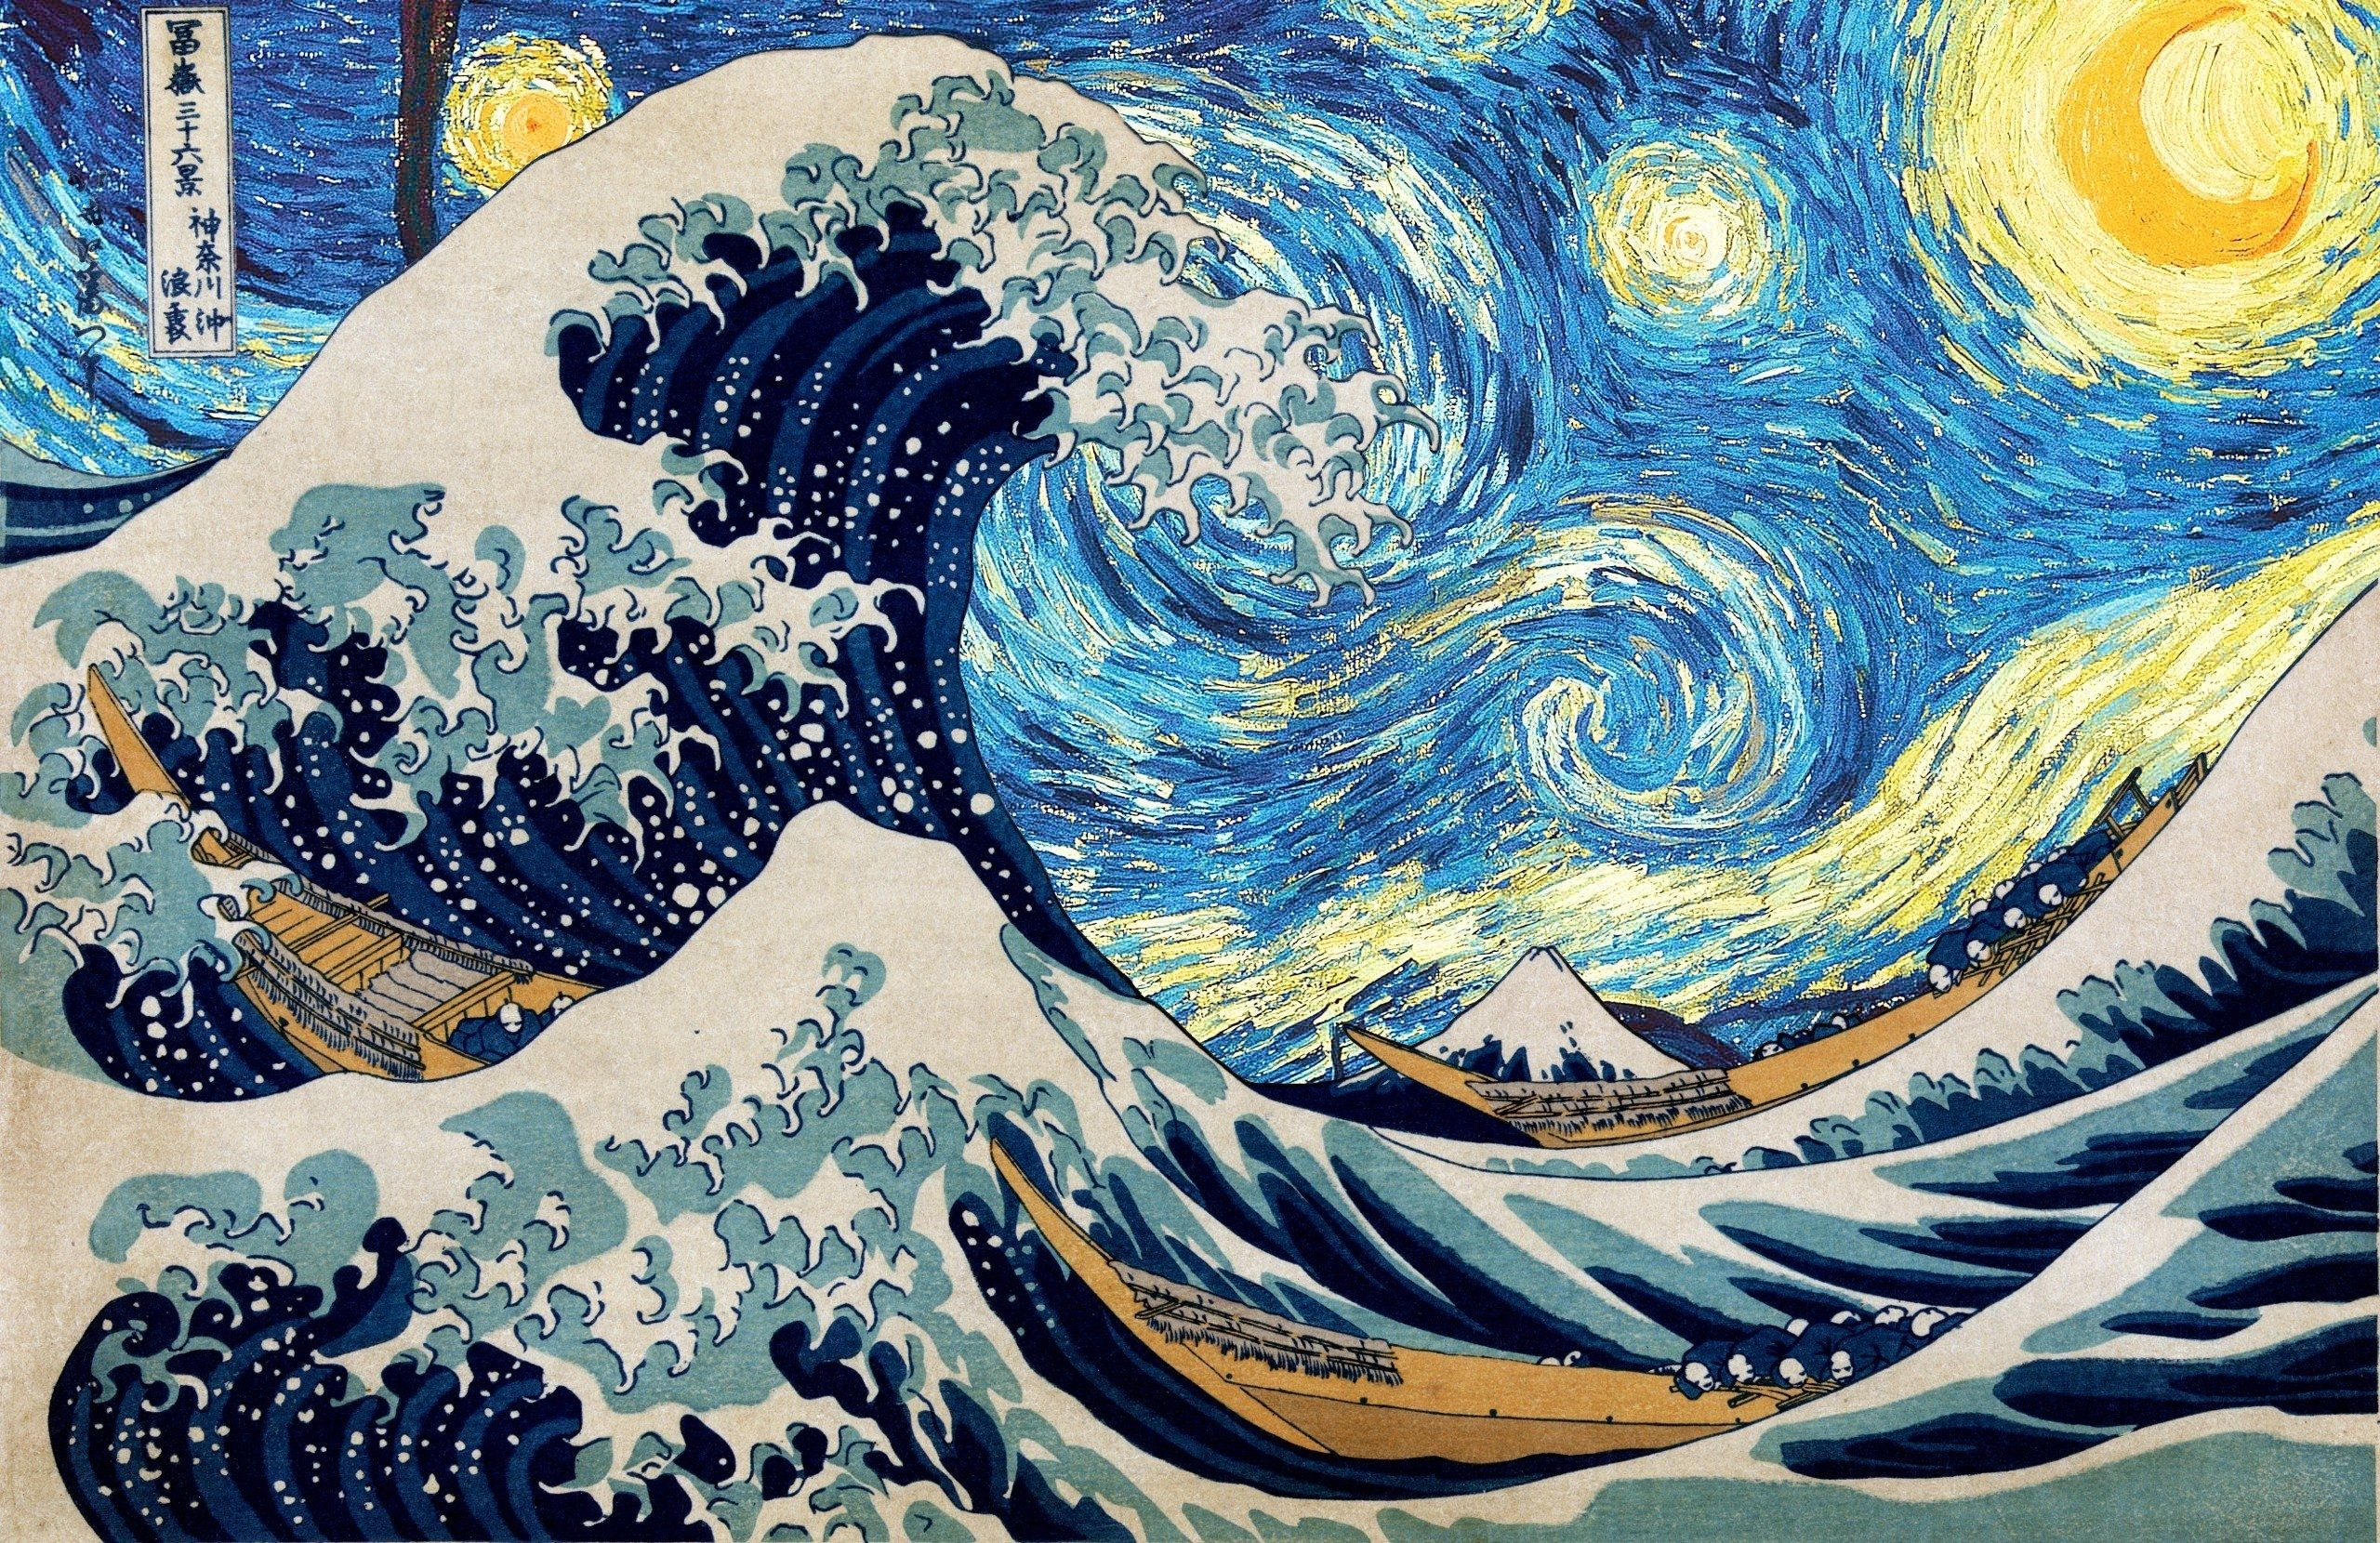 The Great Wave Of Kanagawa Starry Night Hd Wallpaper Starry Night Wallpaper Van Gogh Wallpaper Desktop Wallpaper Art